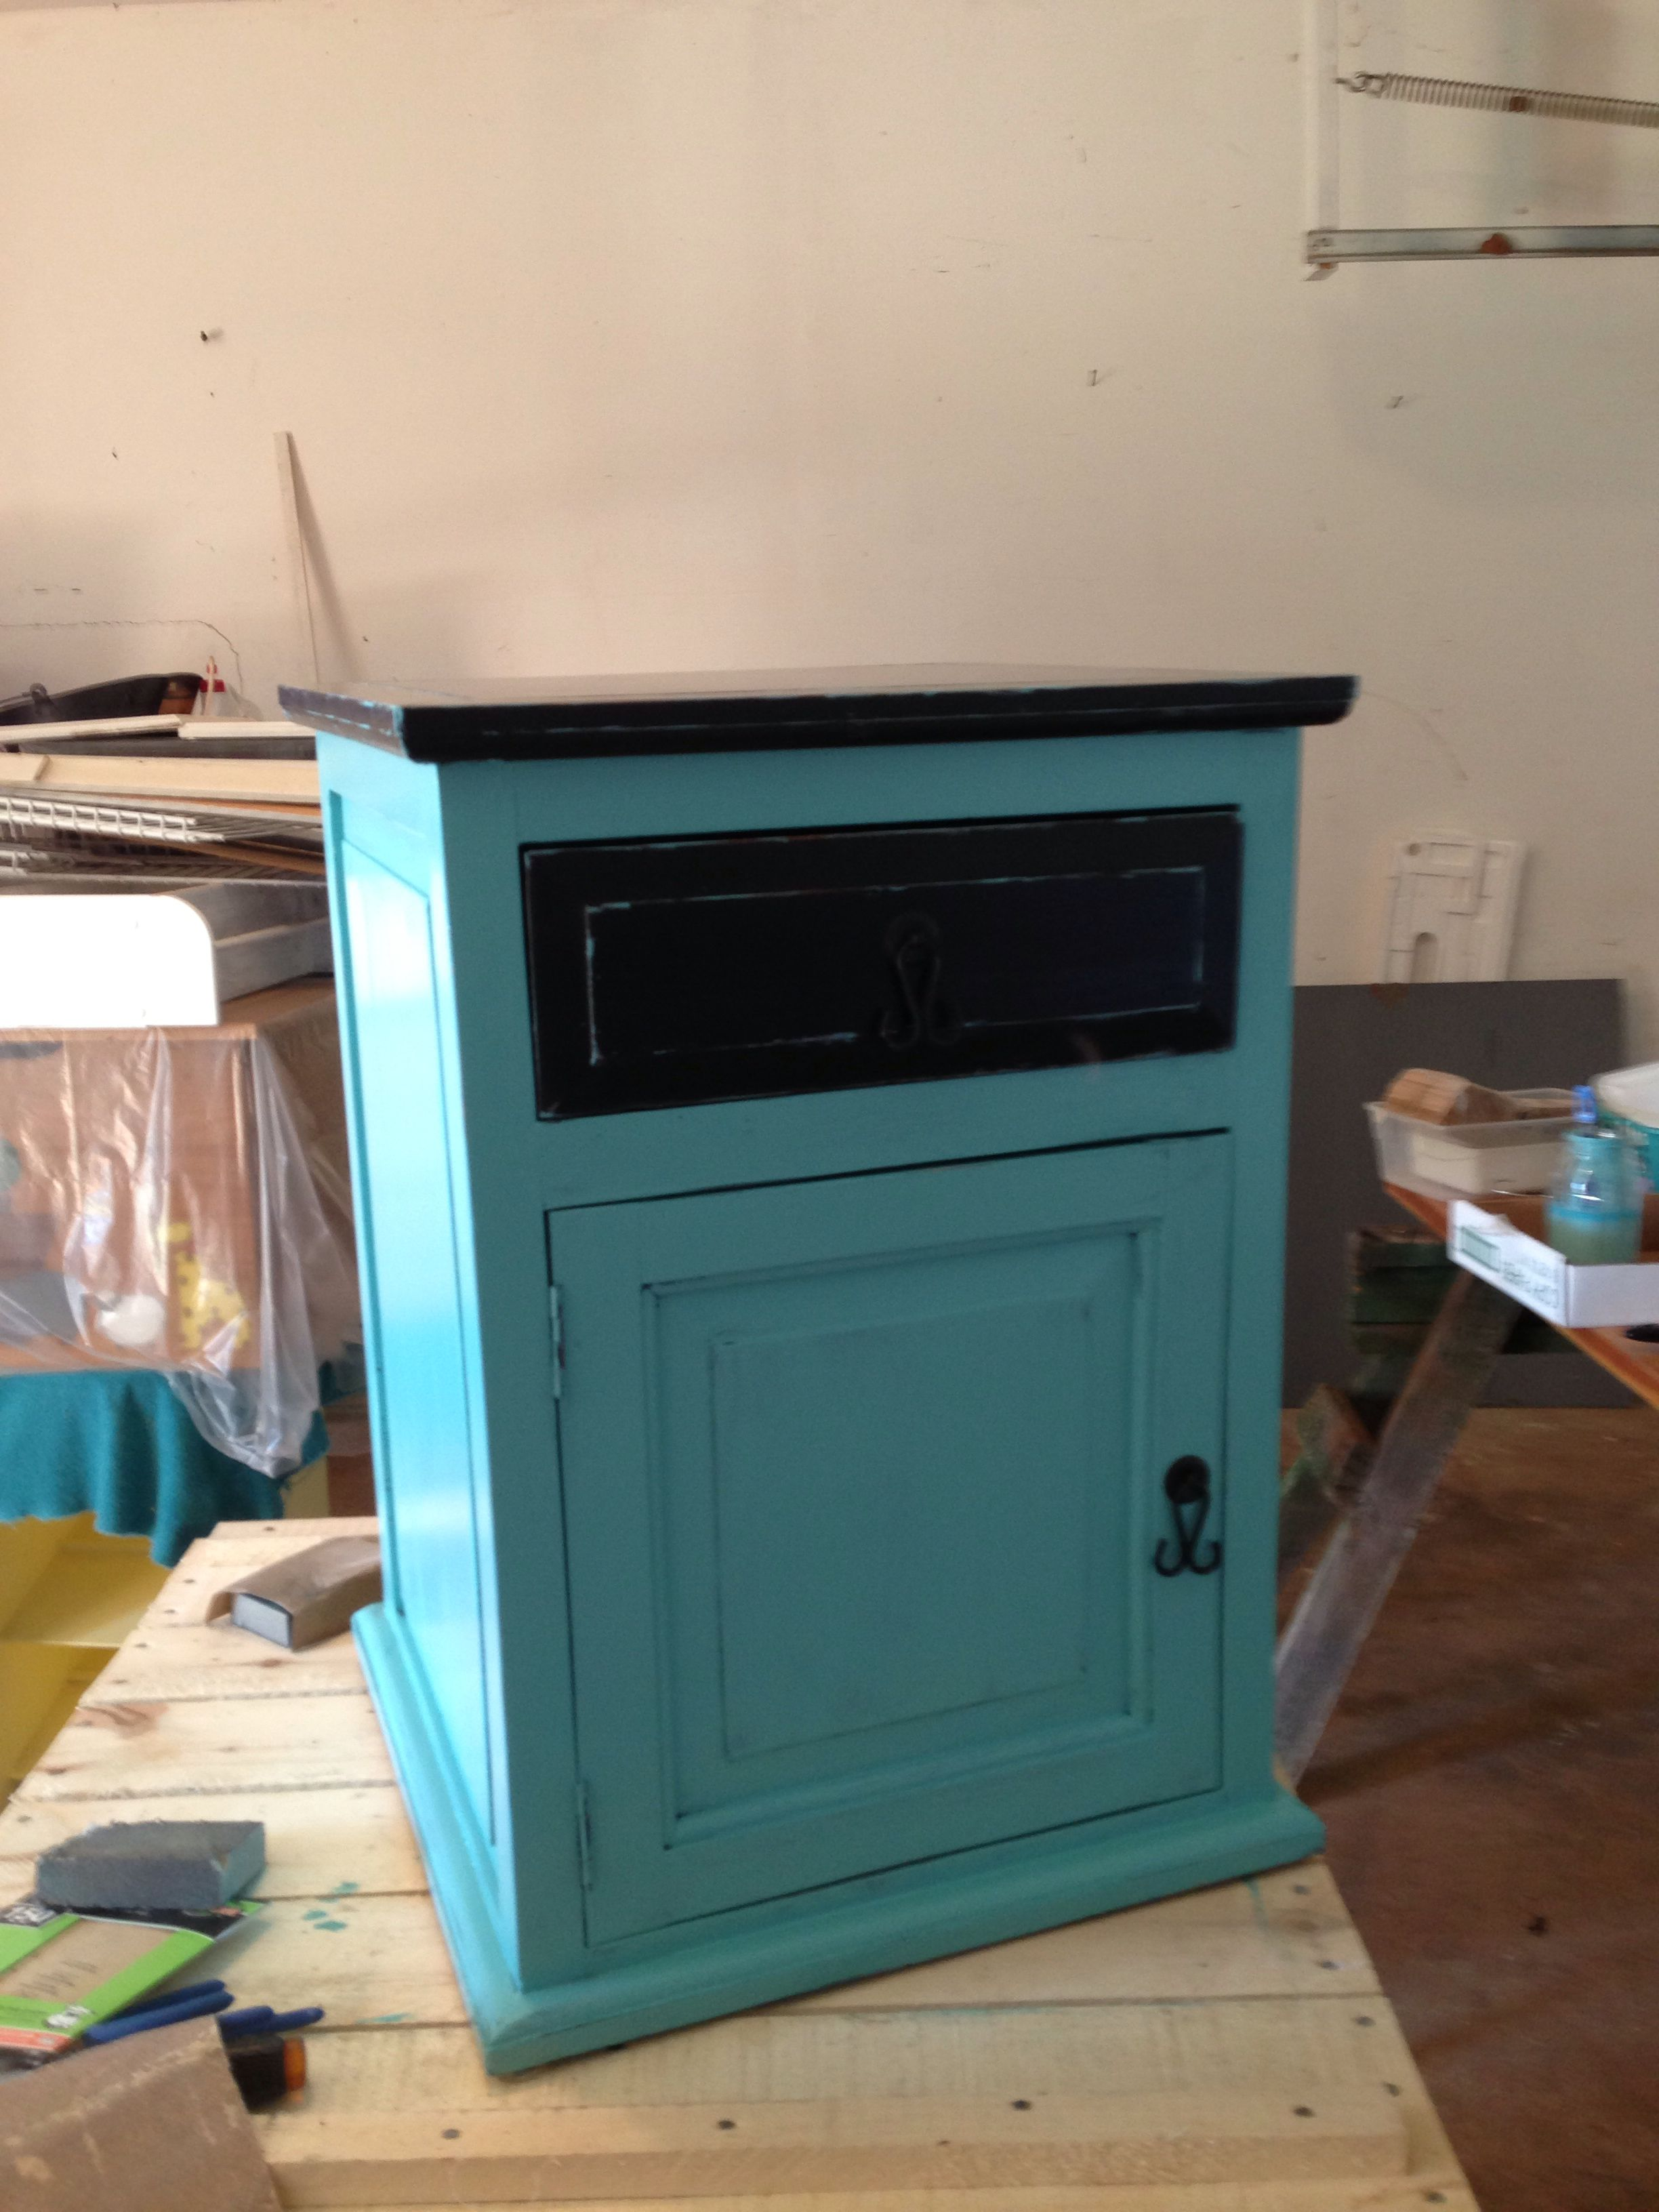 Charmant Another Hobby Lobby Black End Table With One Drawer And Door. Painted  Turquoise Leaving Top And Drawer Original Black. Distressed Showing Black  Paint On ...